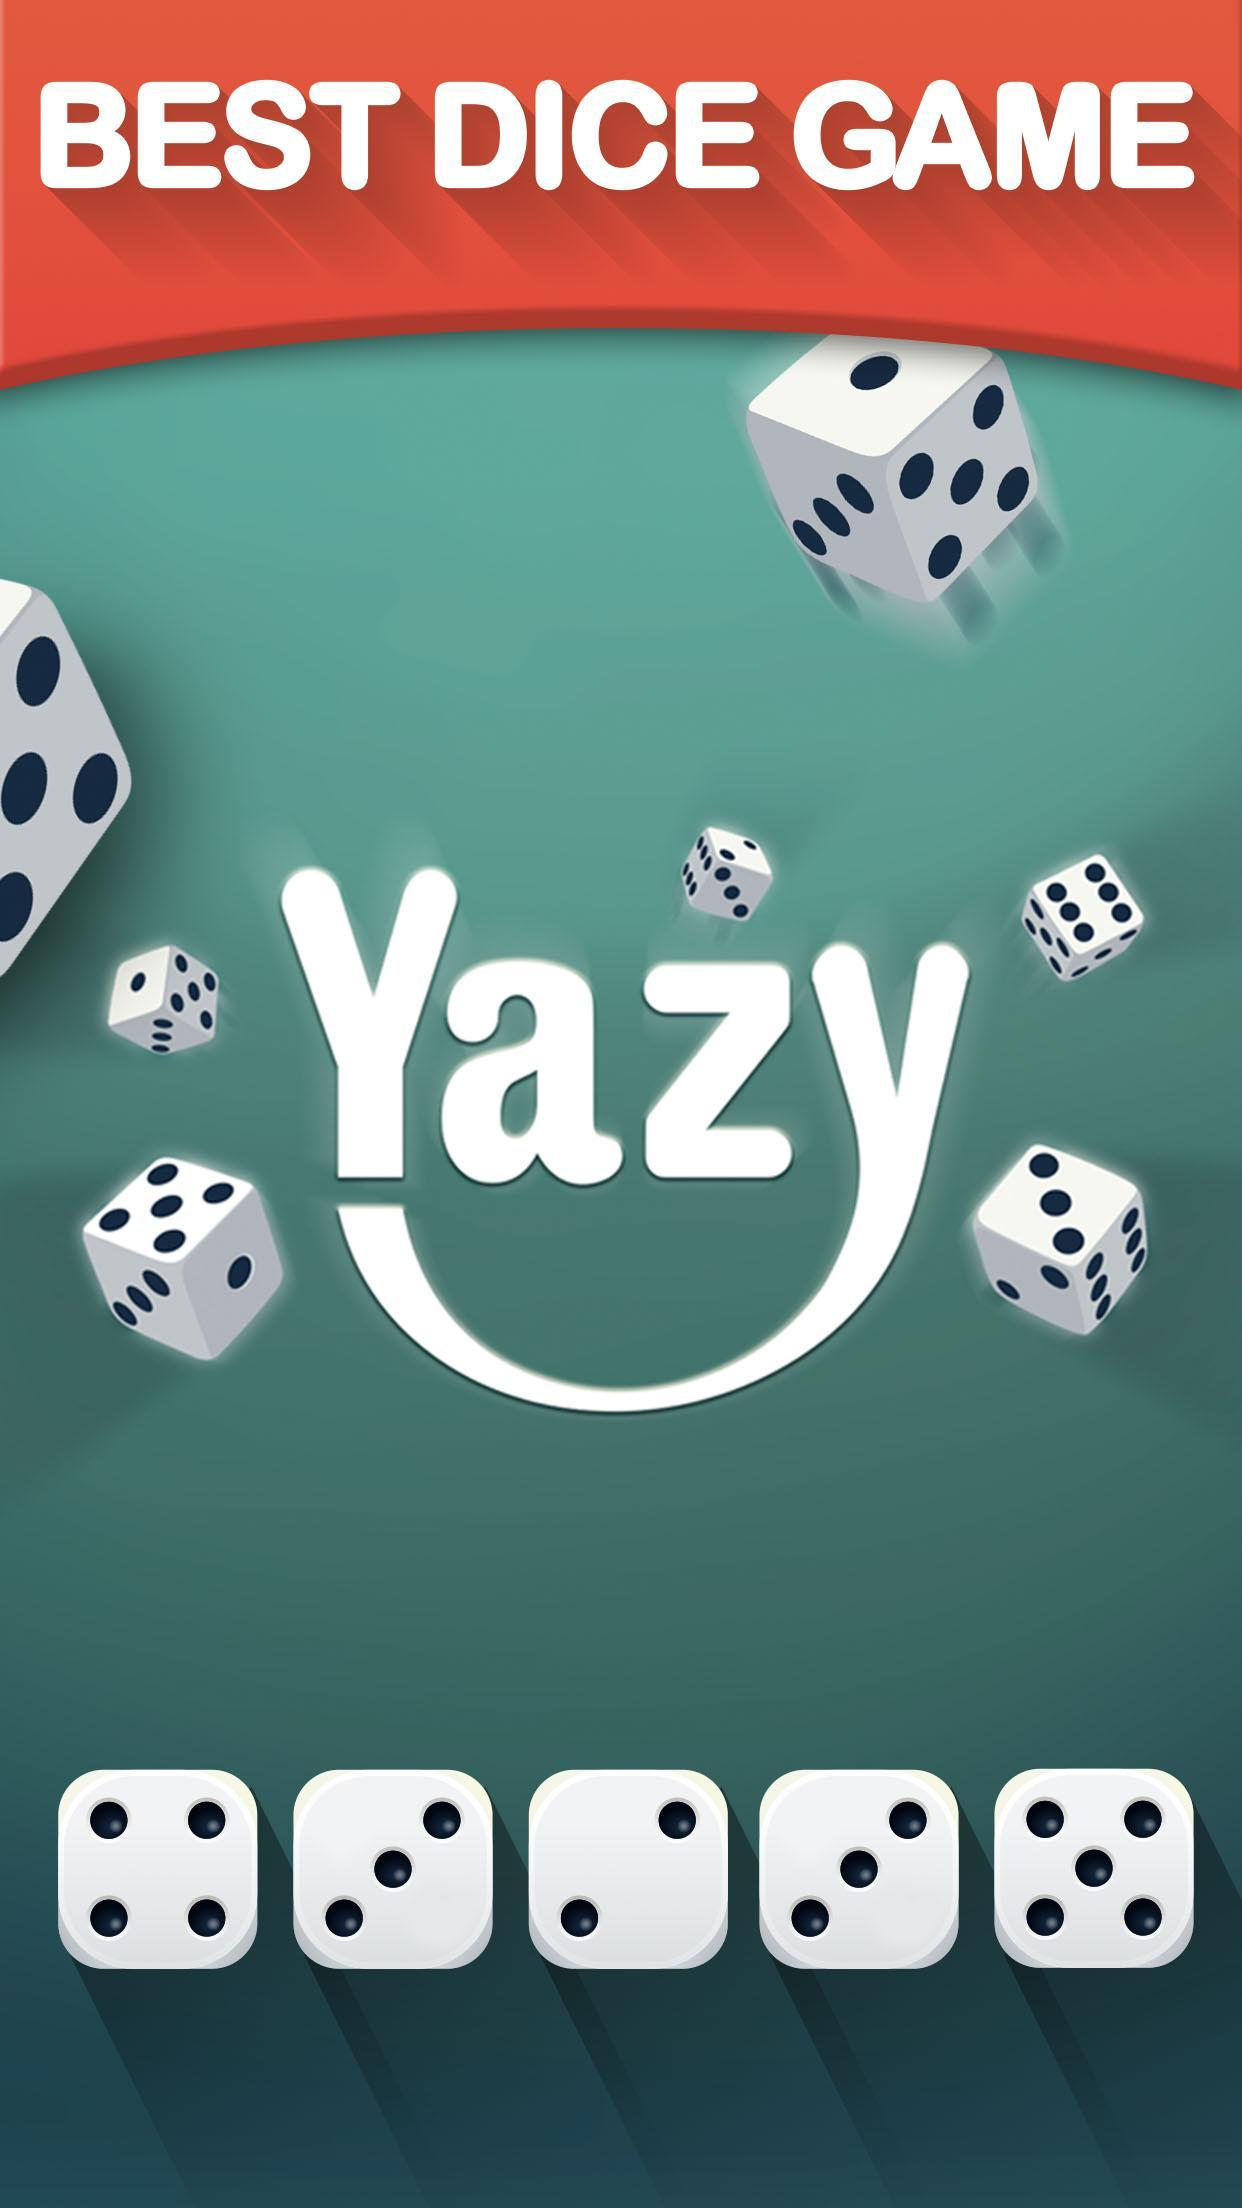 Yazy the best yatzy dice game 1.0.34 Screenshot 5